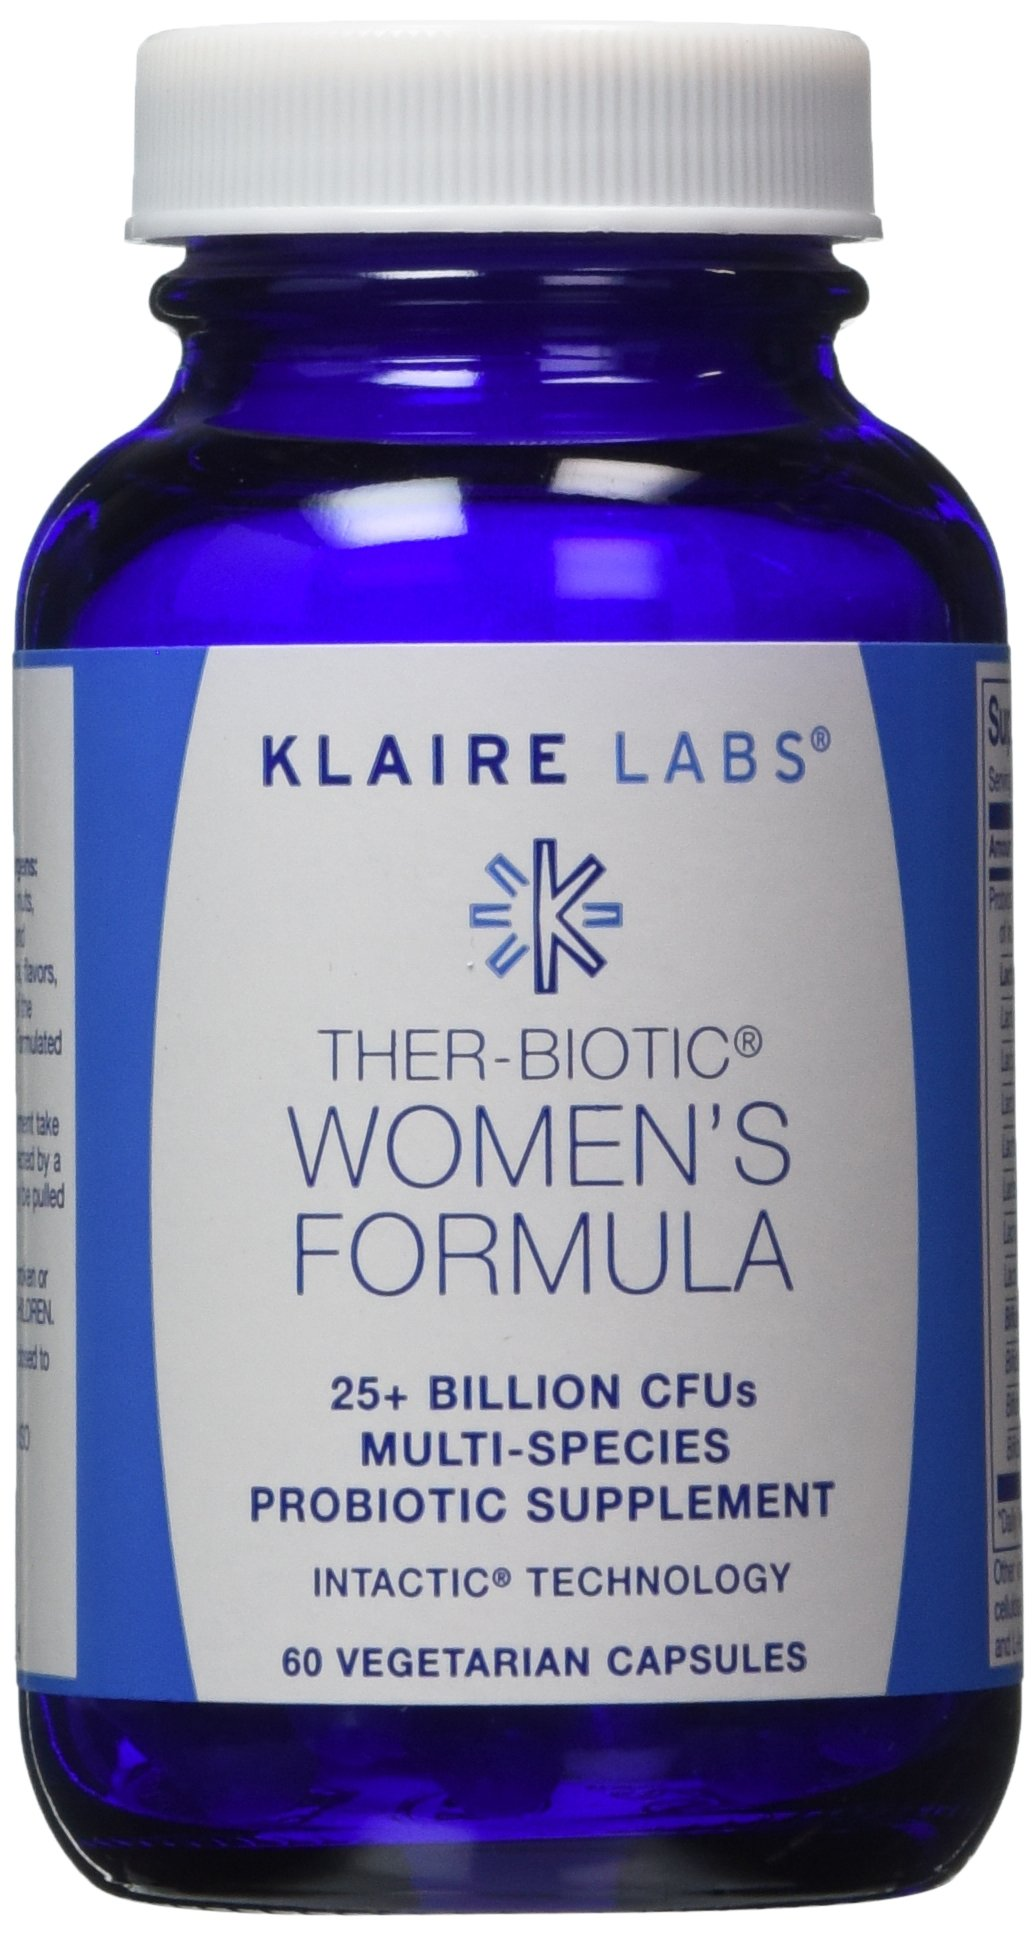 Klaire Labs Ther-Biotic Womens Formula Vegetarian Capsules, 60 Count